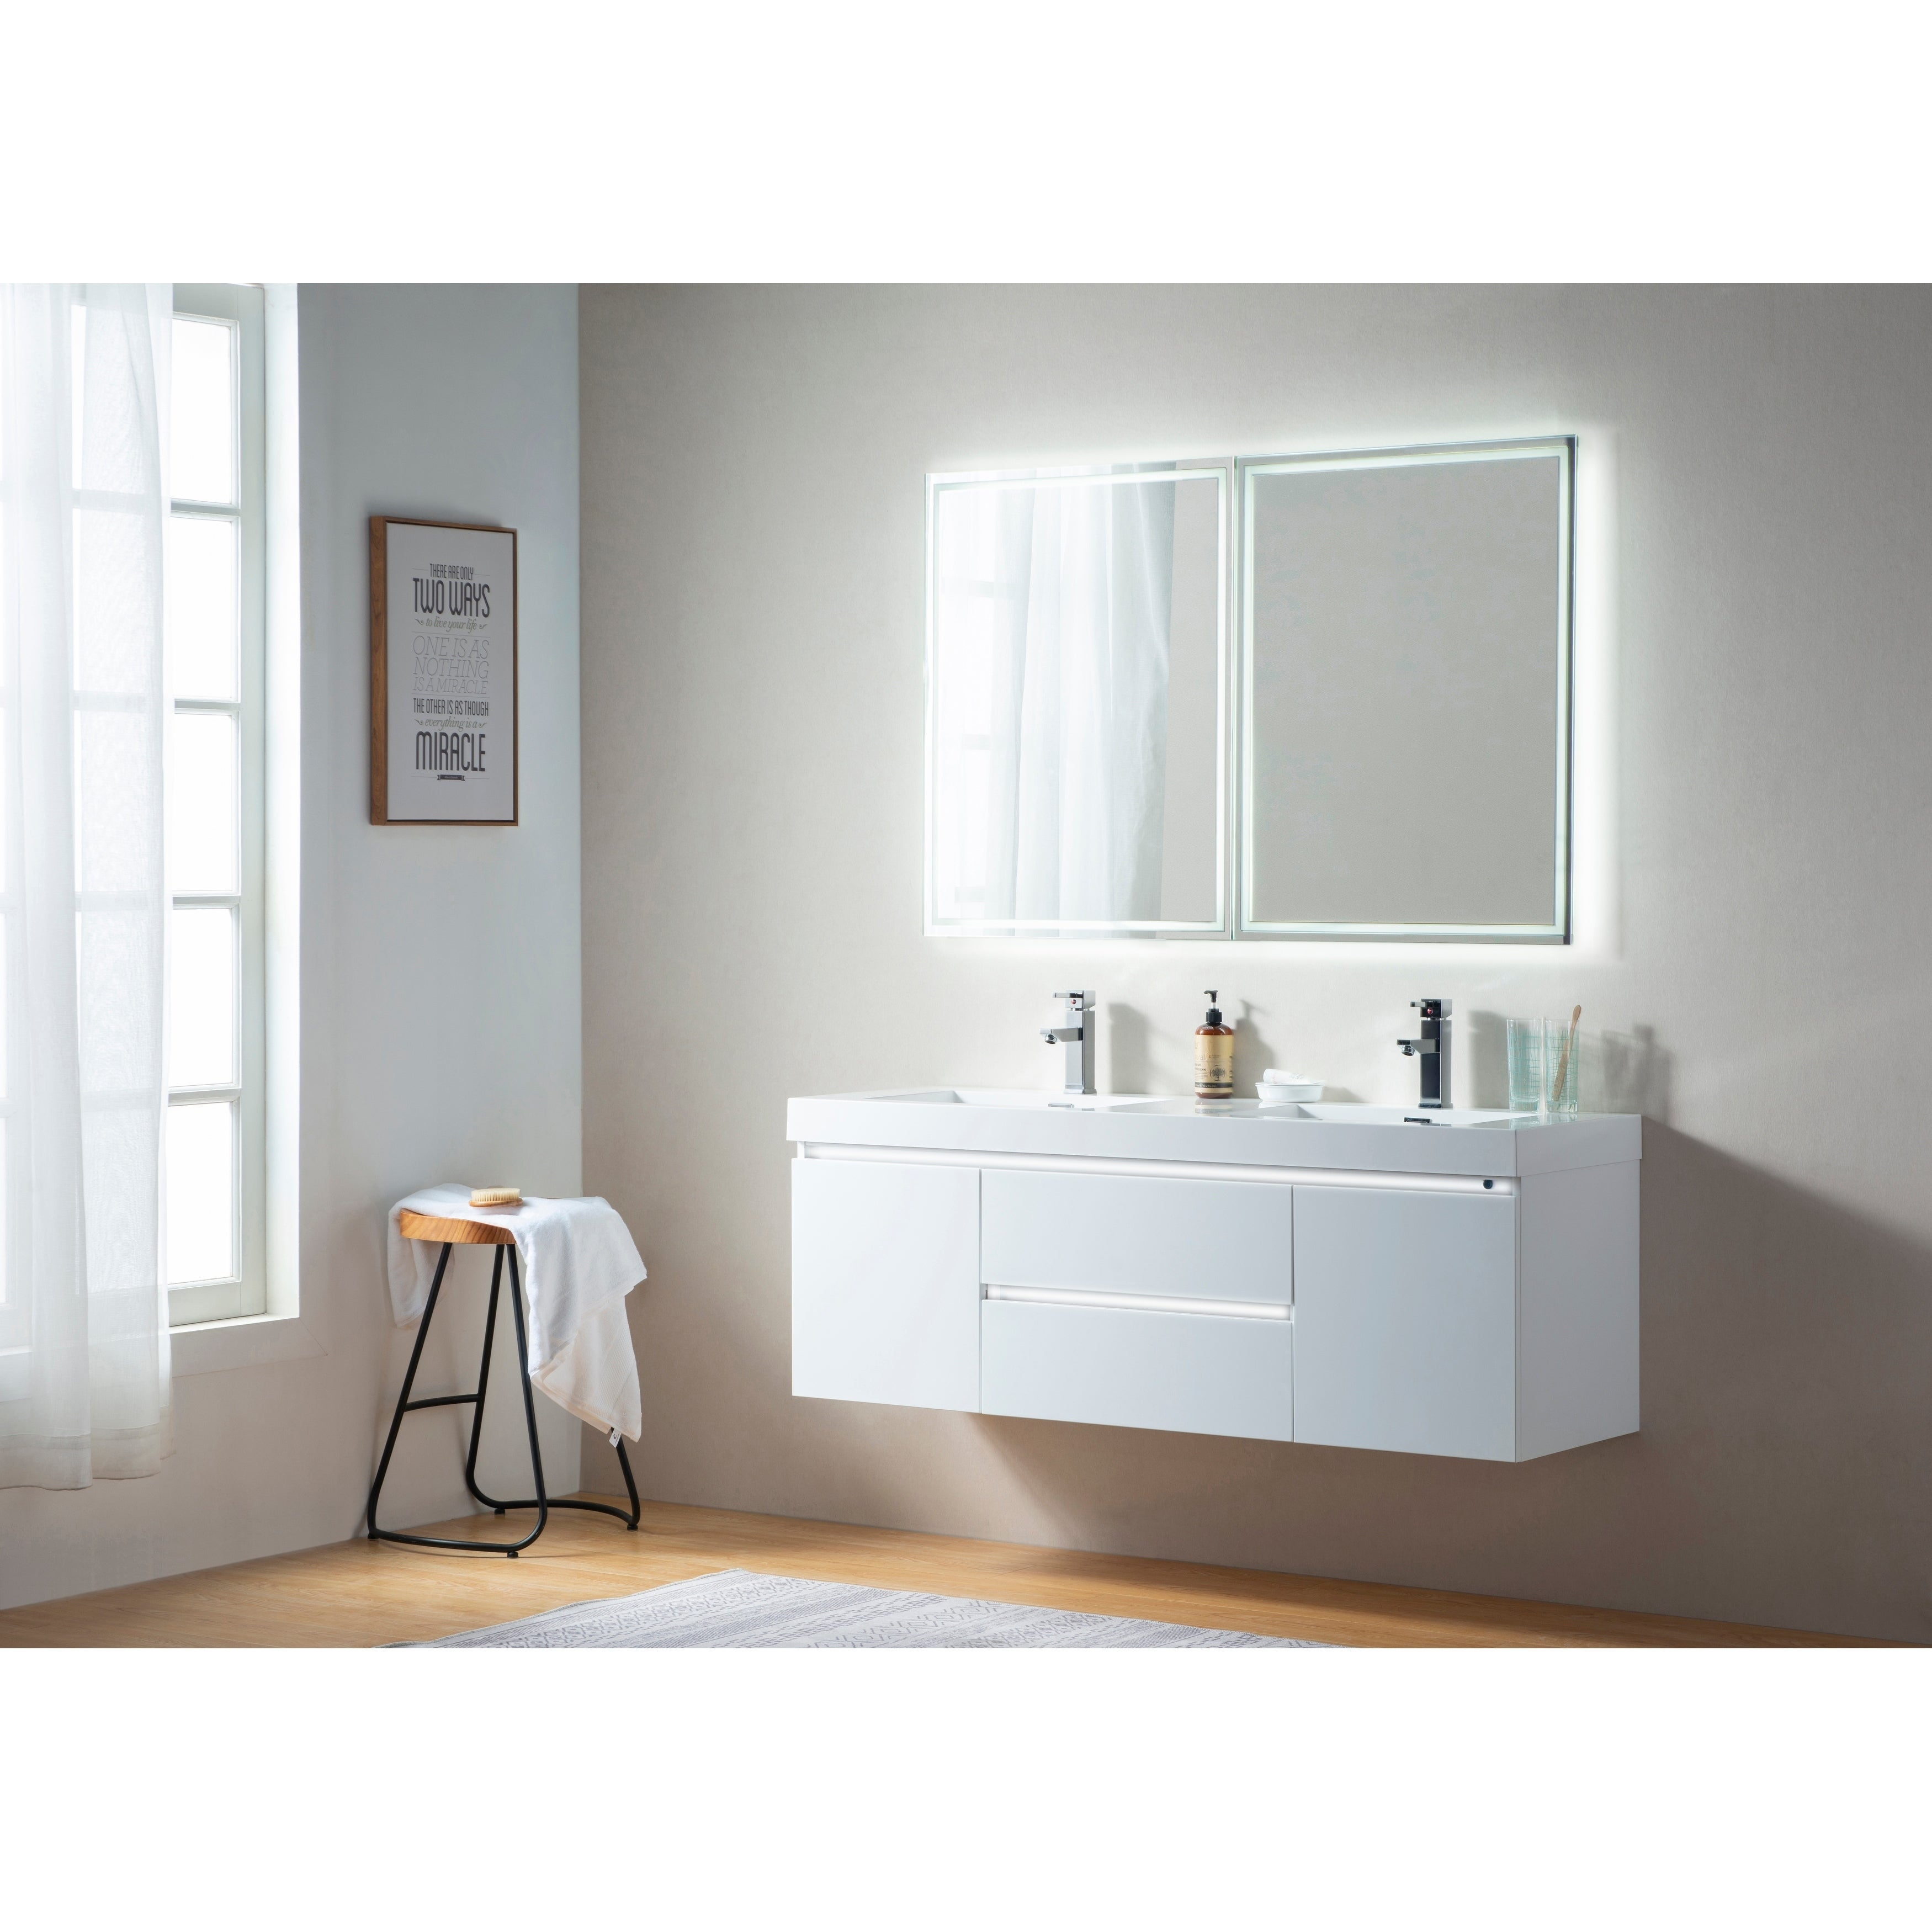 Vanity Art 60 Inch Double Sink Wall Hung Bathroom Set White Stone Top Glossy Finish 2 Drawers 4 Shelves